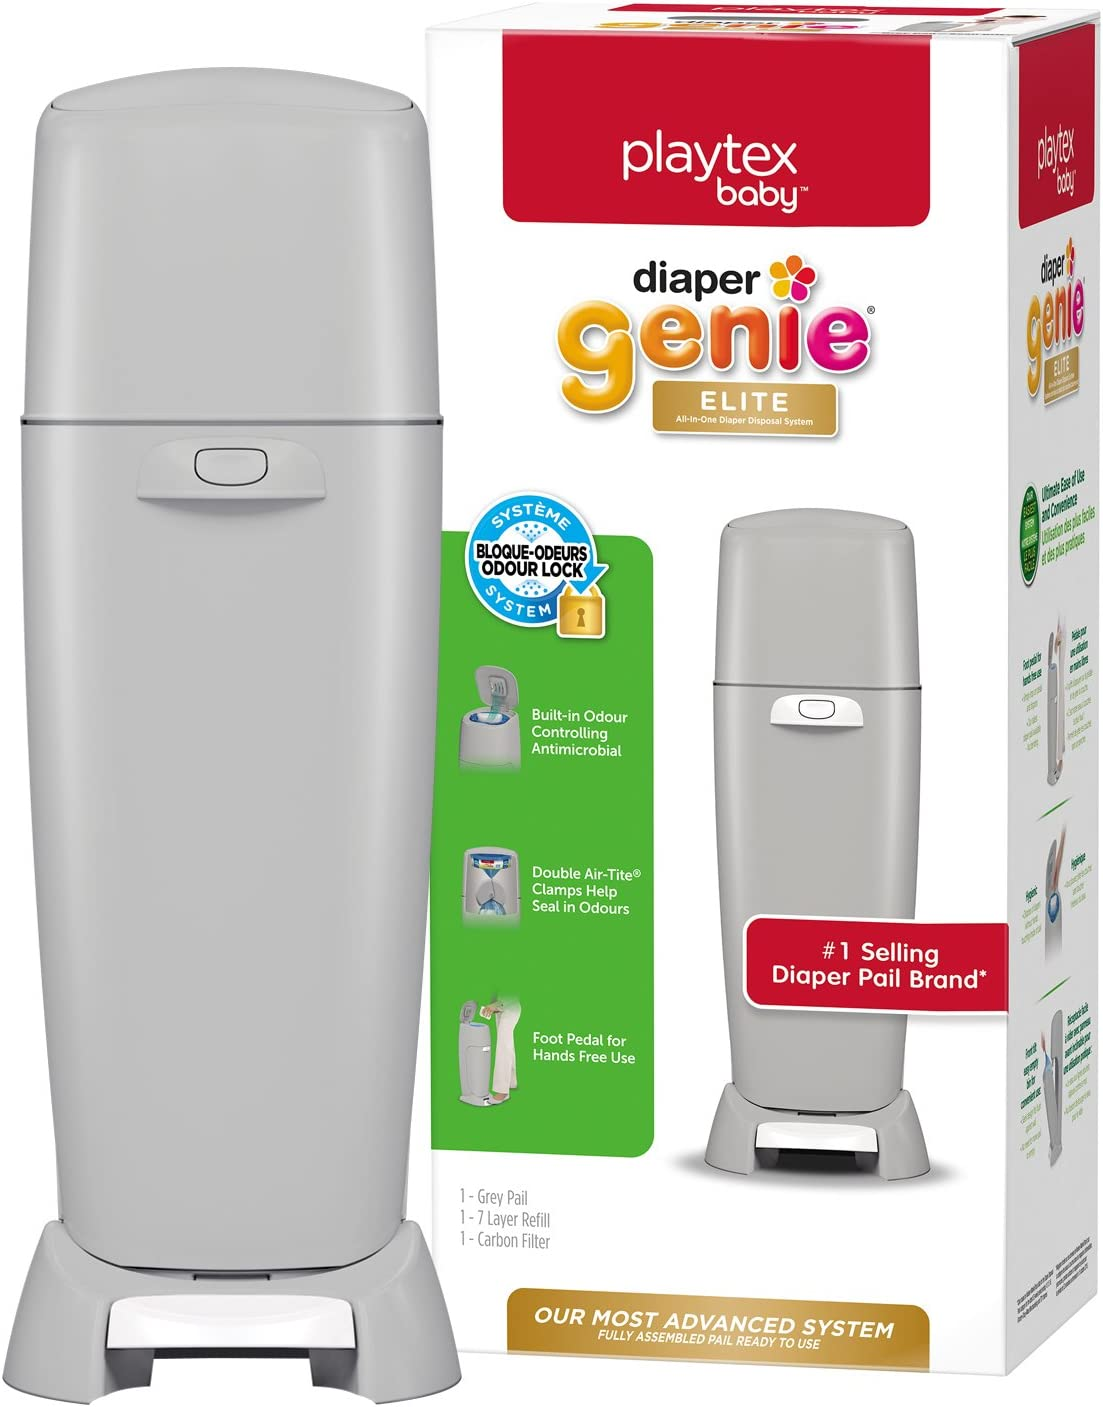 White Playtex Baby Diaper Genie Elite Diaper Pail System with Front Tilt Pail for Easy Diaper Disposal